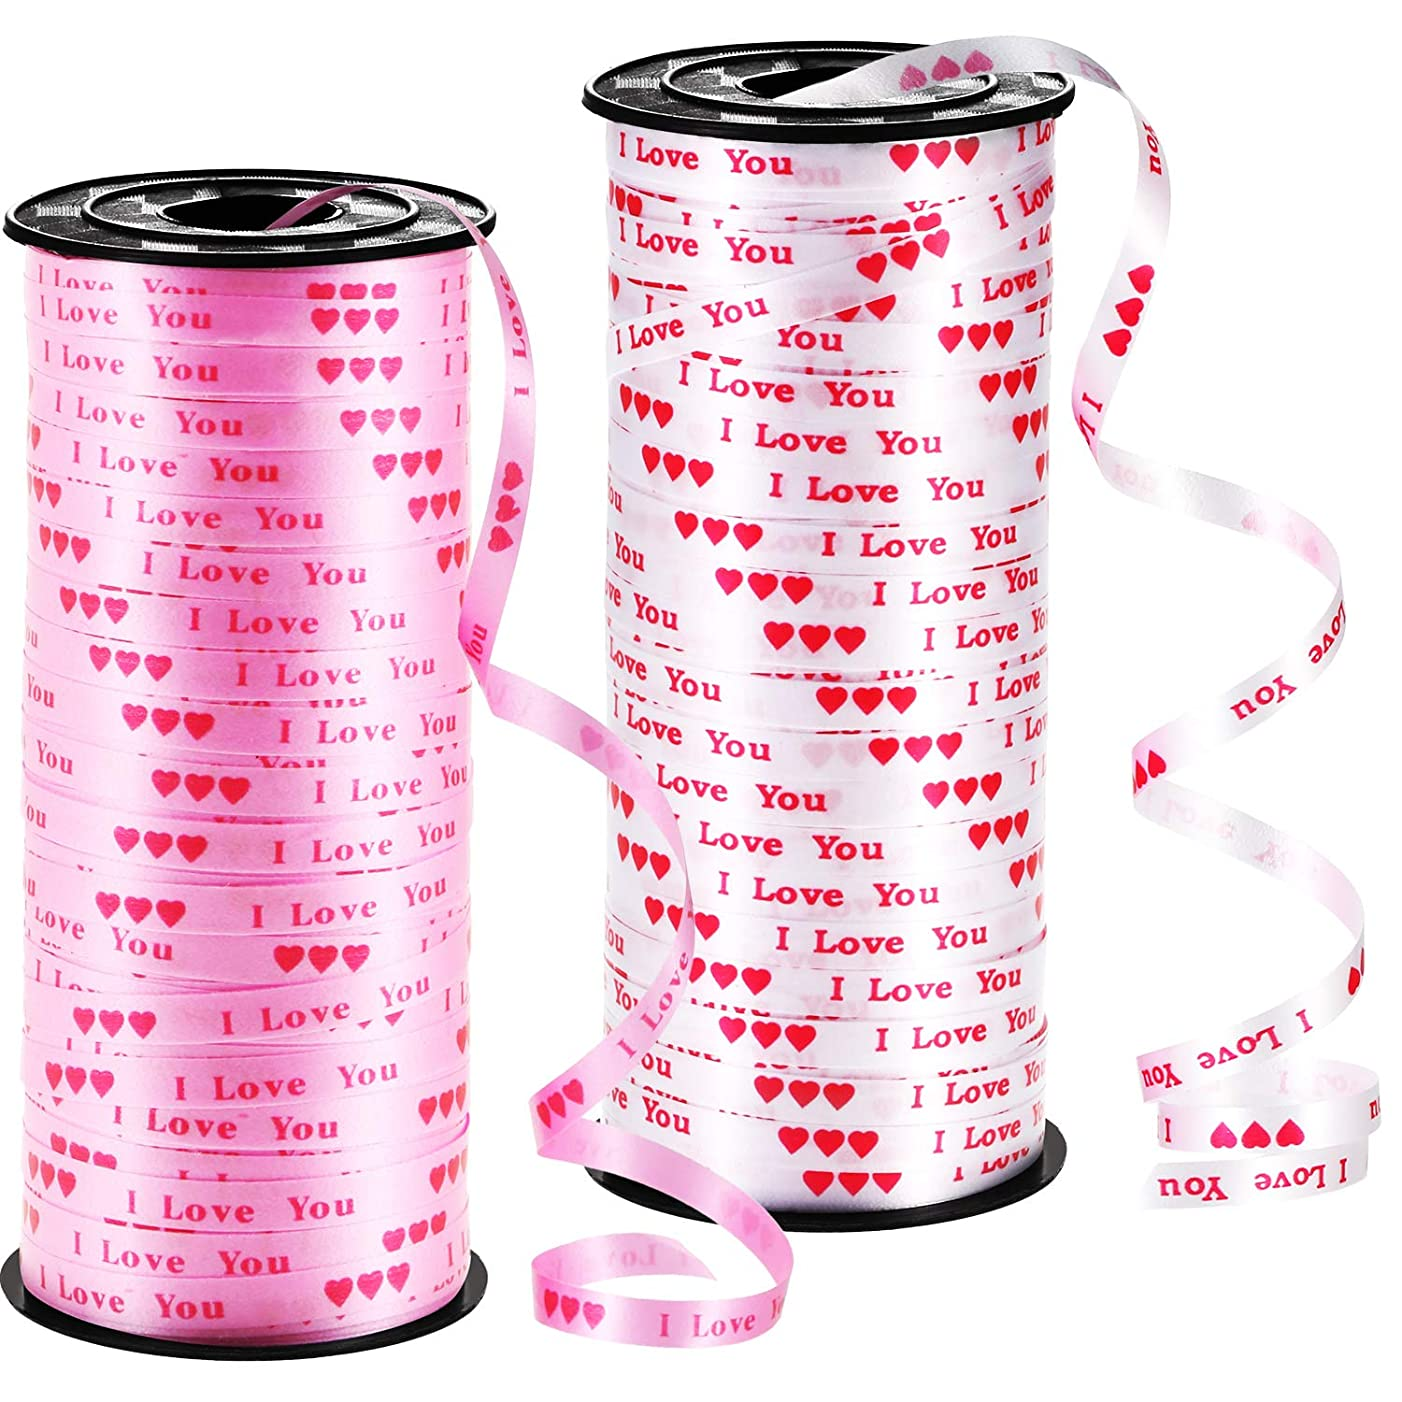 Chengu 2 Pieces Valentine Curling Ribbon Heart Printed Ribbon Love Balloon Curling Ribbon for Gift Wrapping Party Supplies (Pink, White)